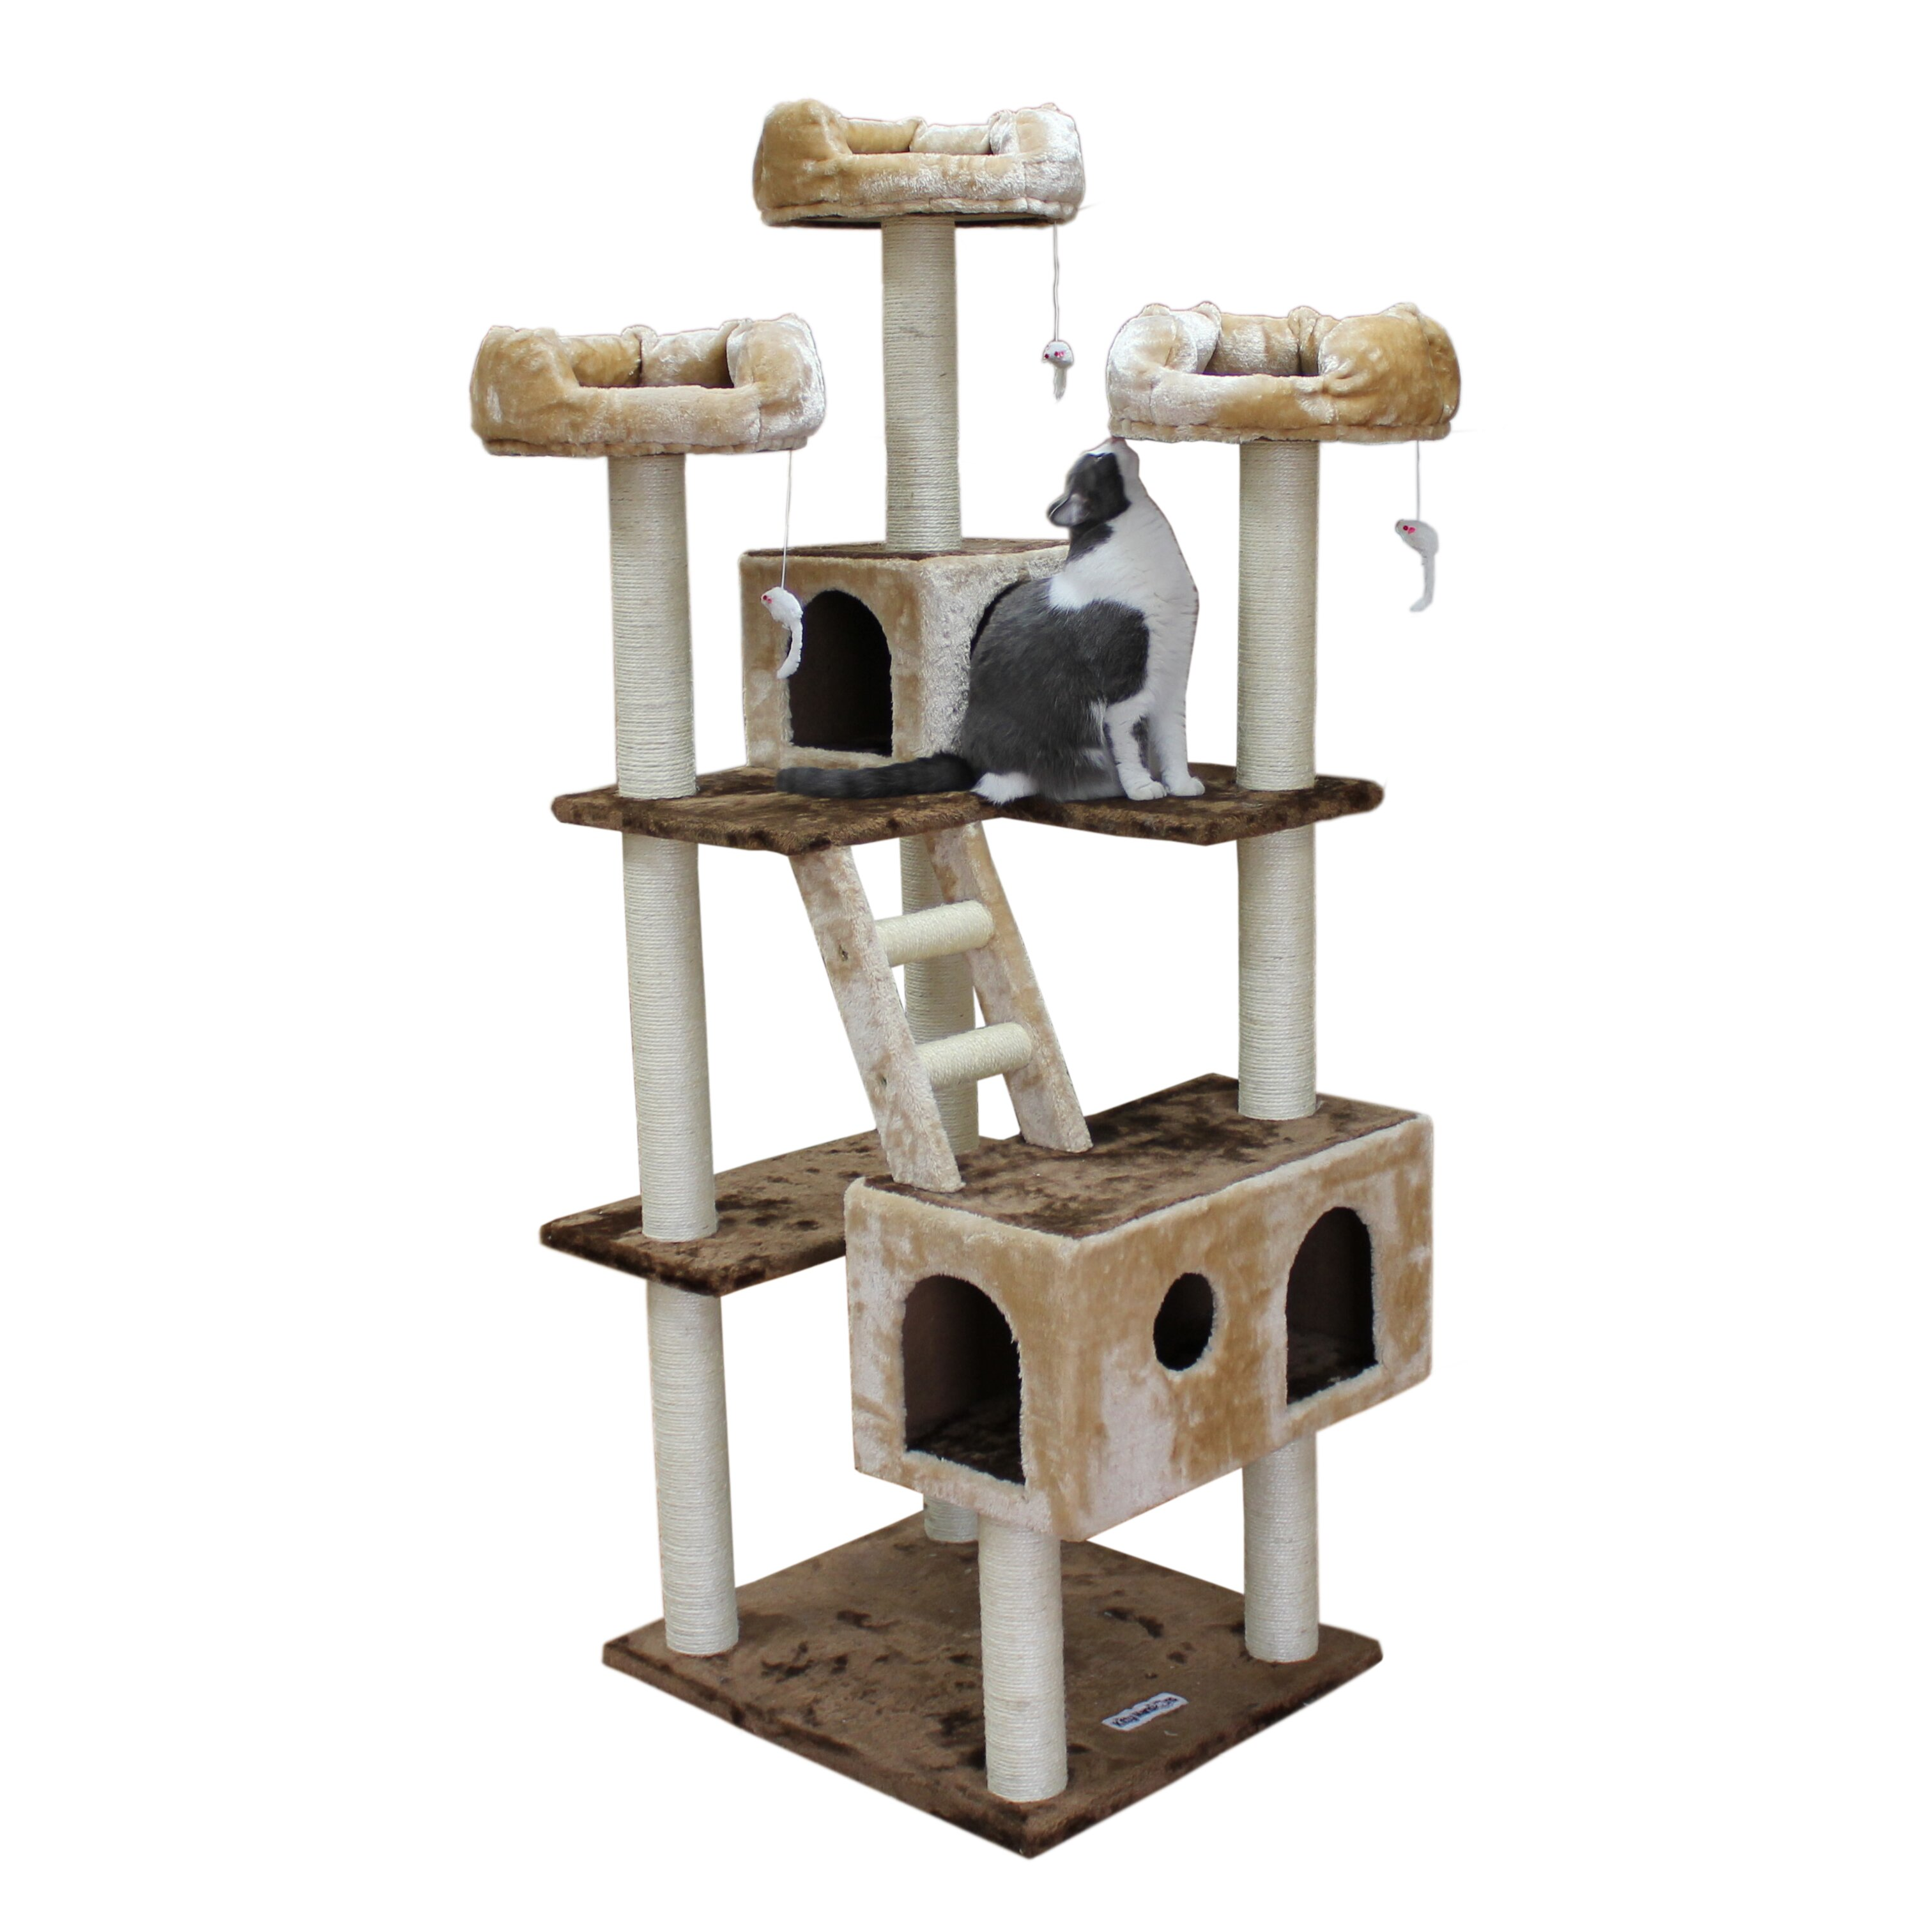 Kitty mansions 73 beverly hills cat tree reviews wayfair for Pictures of cat trees